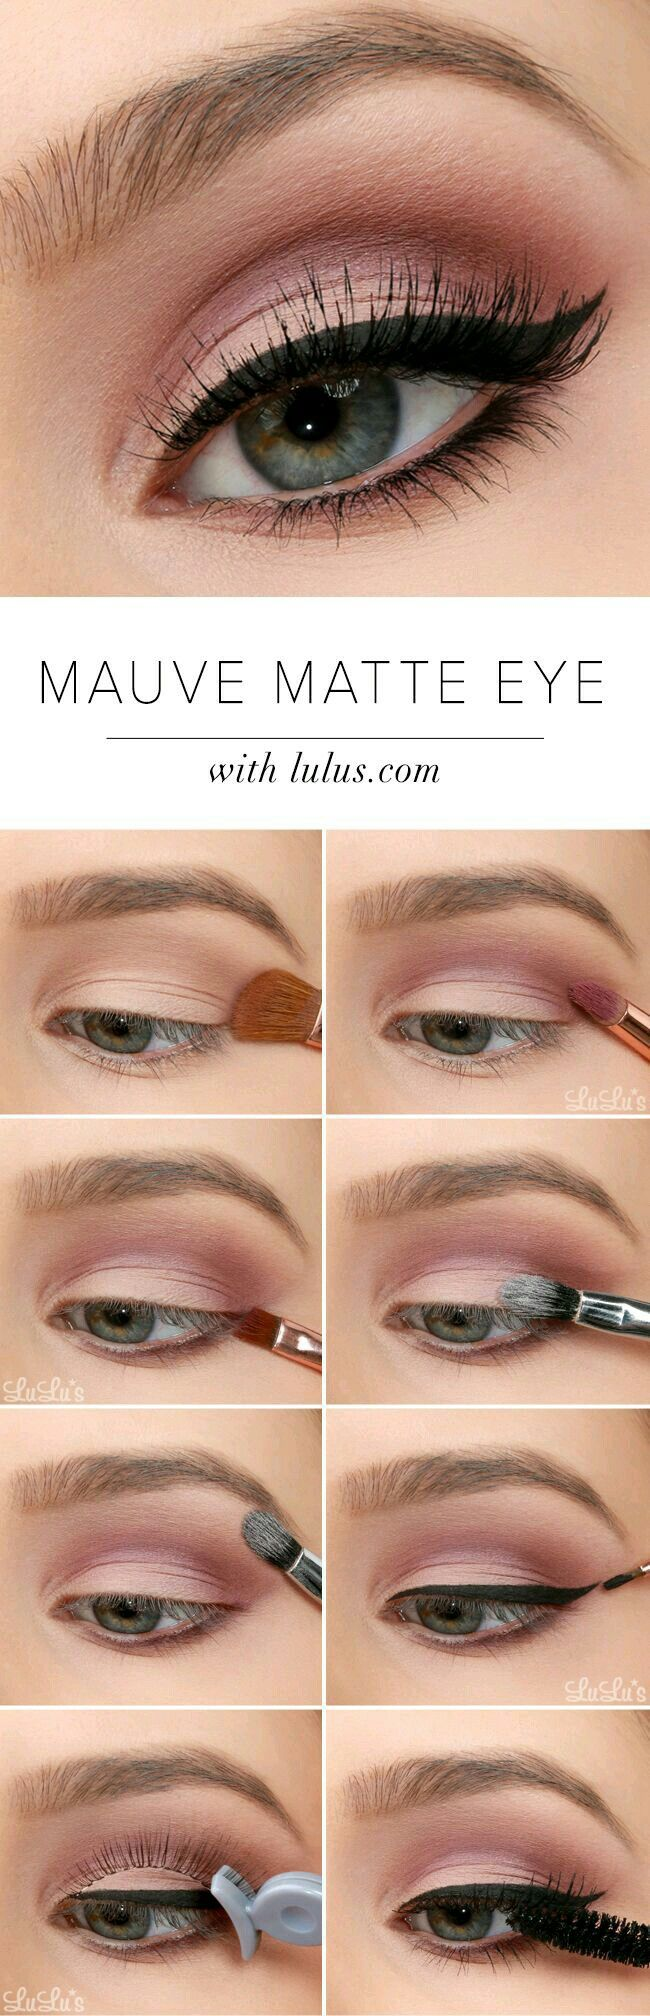 I should try this, but without the fake eyelashes and less eyeliner.